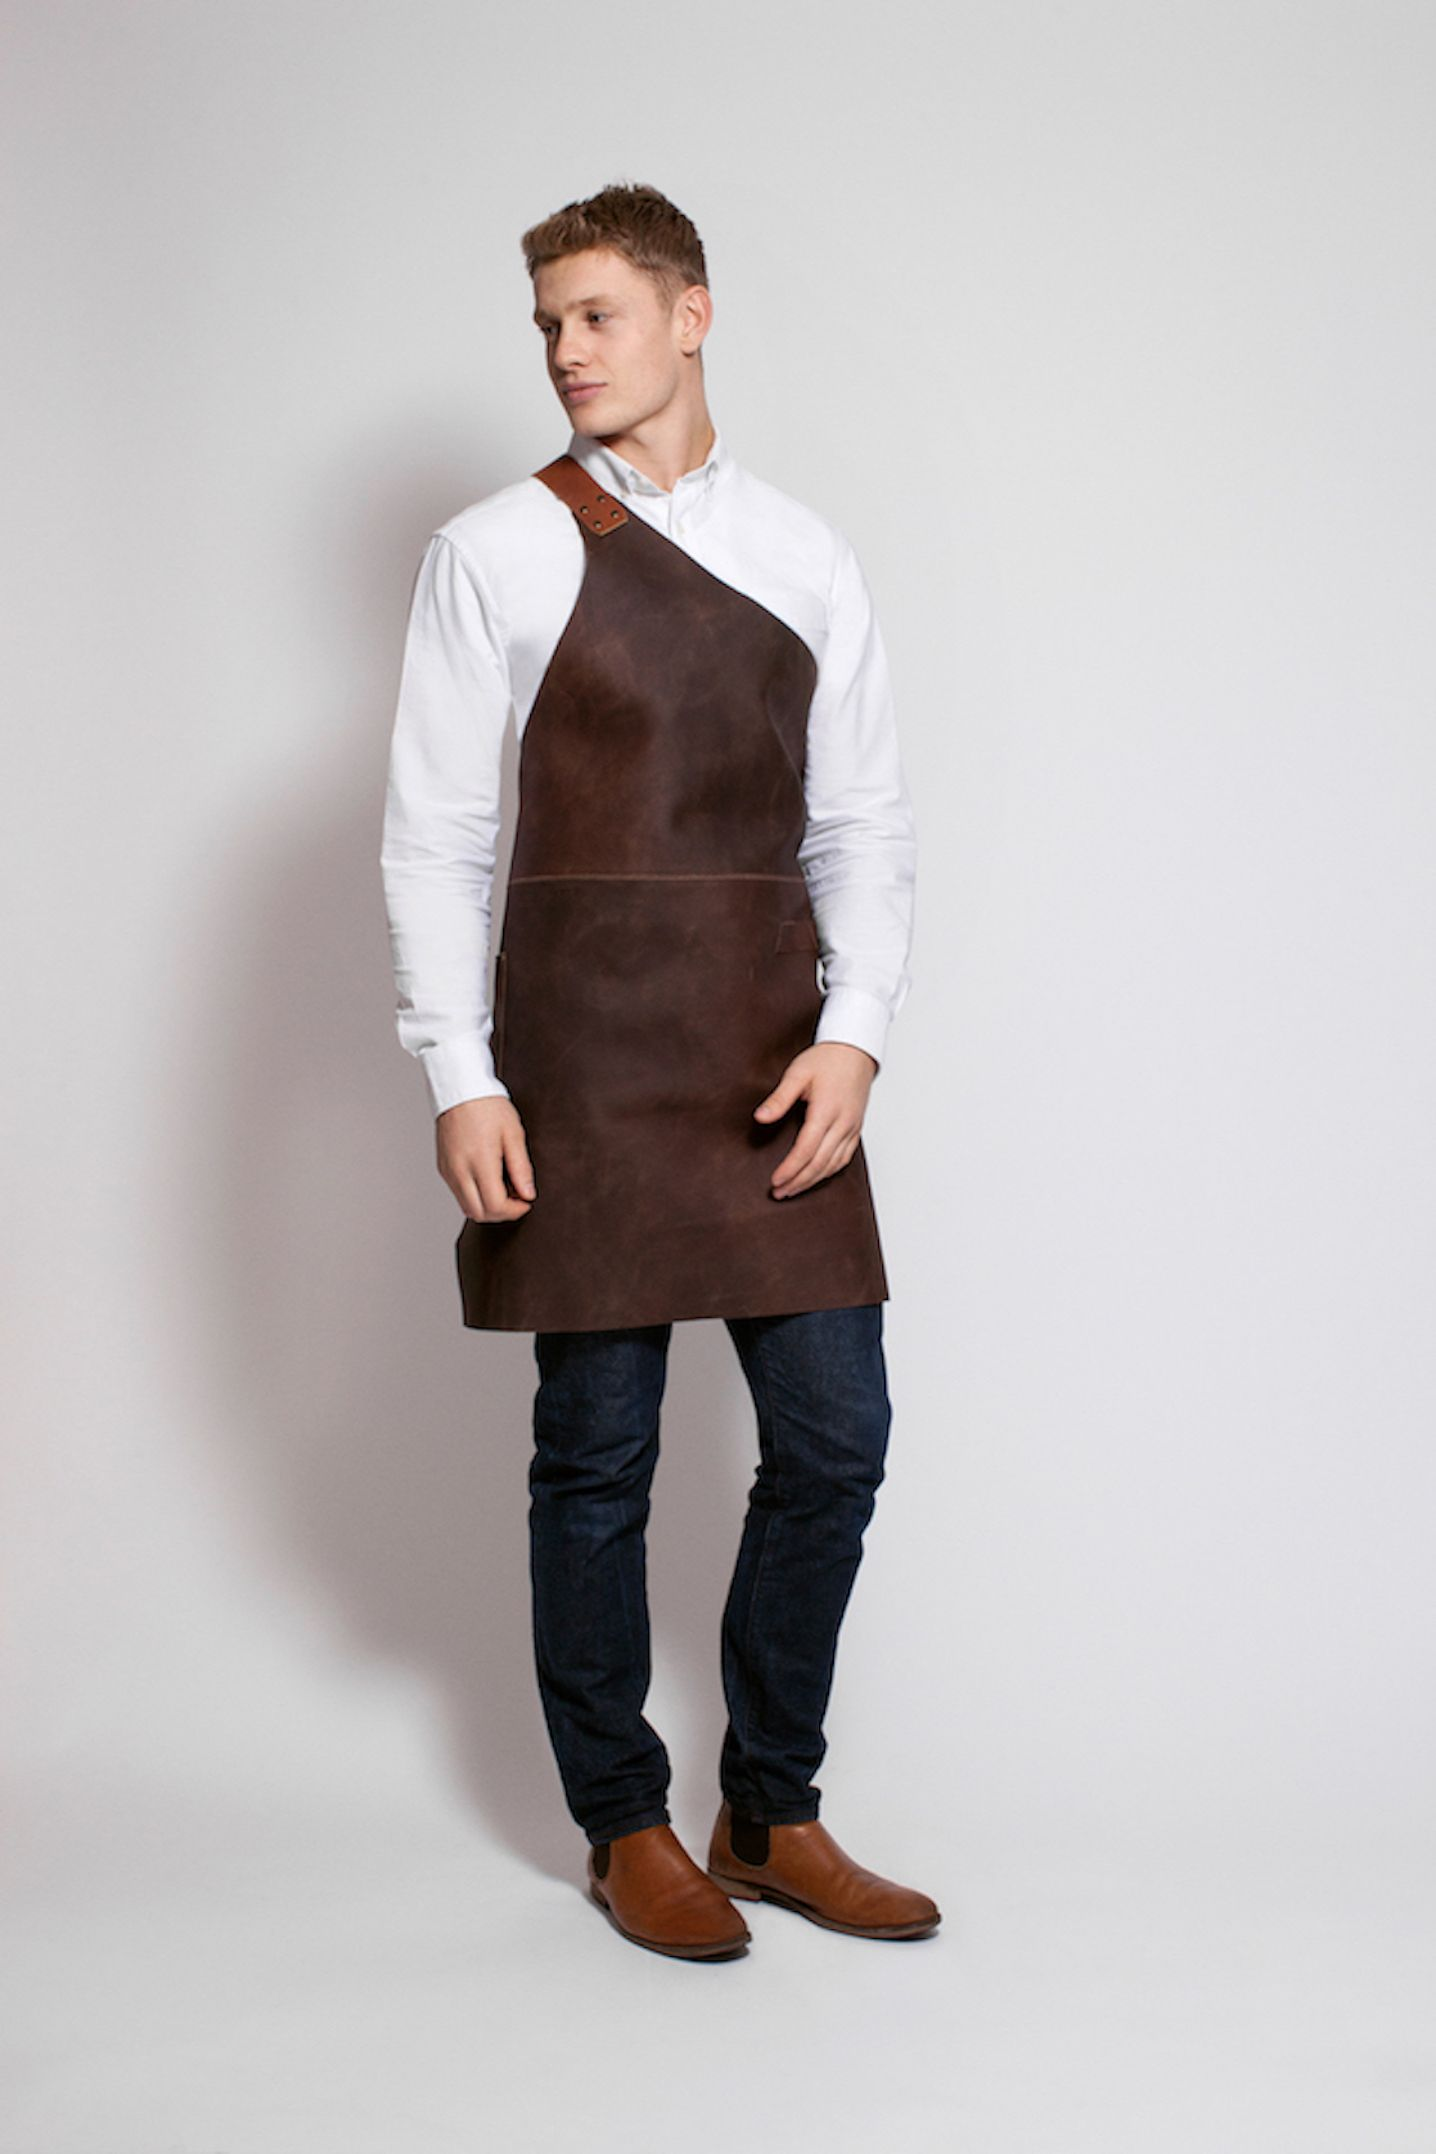 Full Body Leather One Strap Butchers Apron in 2020